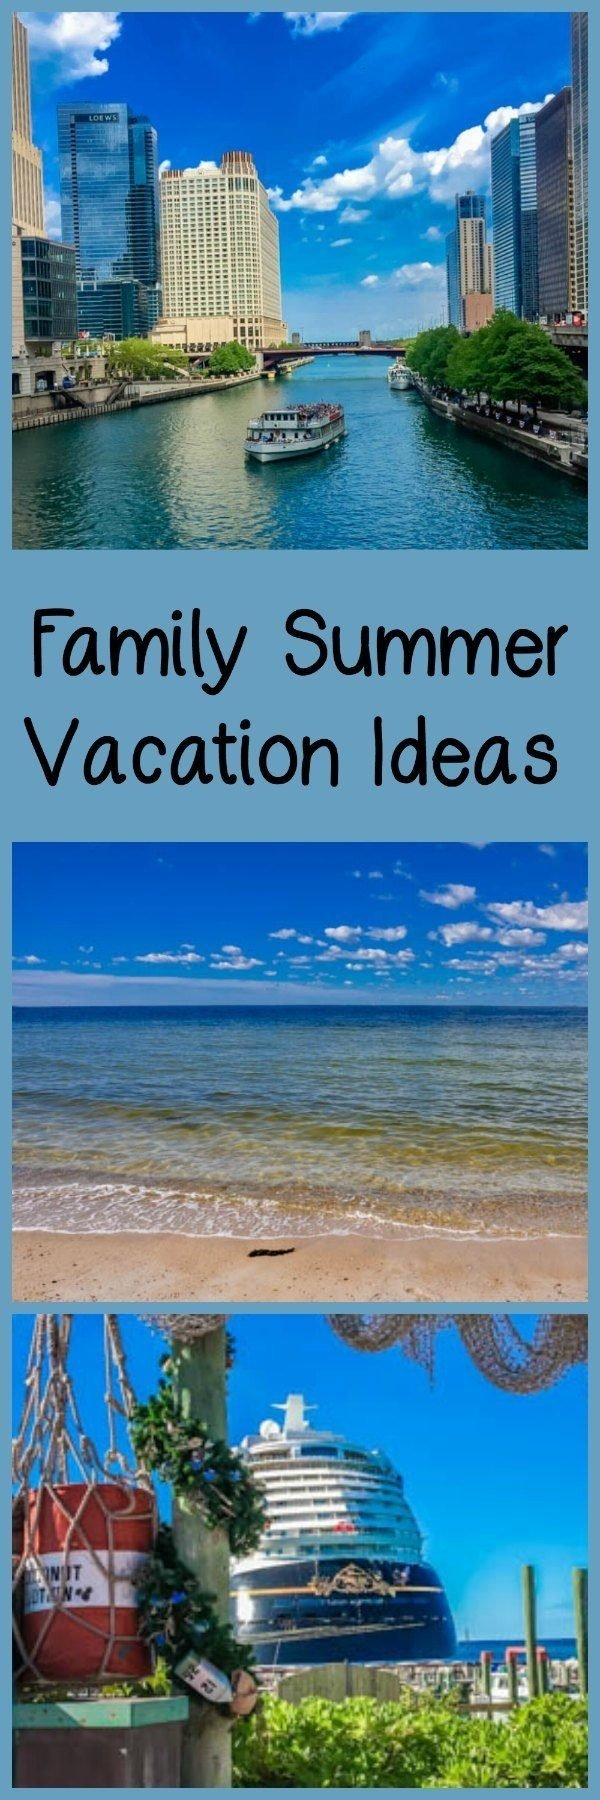 10 Most Popular Summer Vacation Ideas For Families family summer vacation ideas for your next trip family travel magazine 1